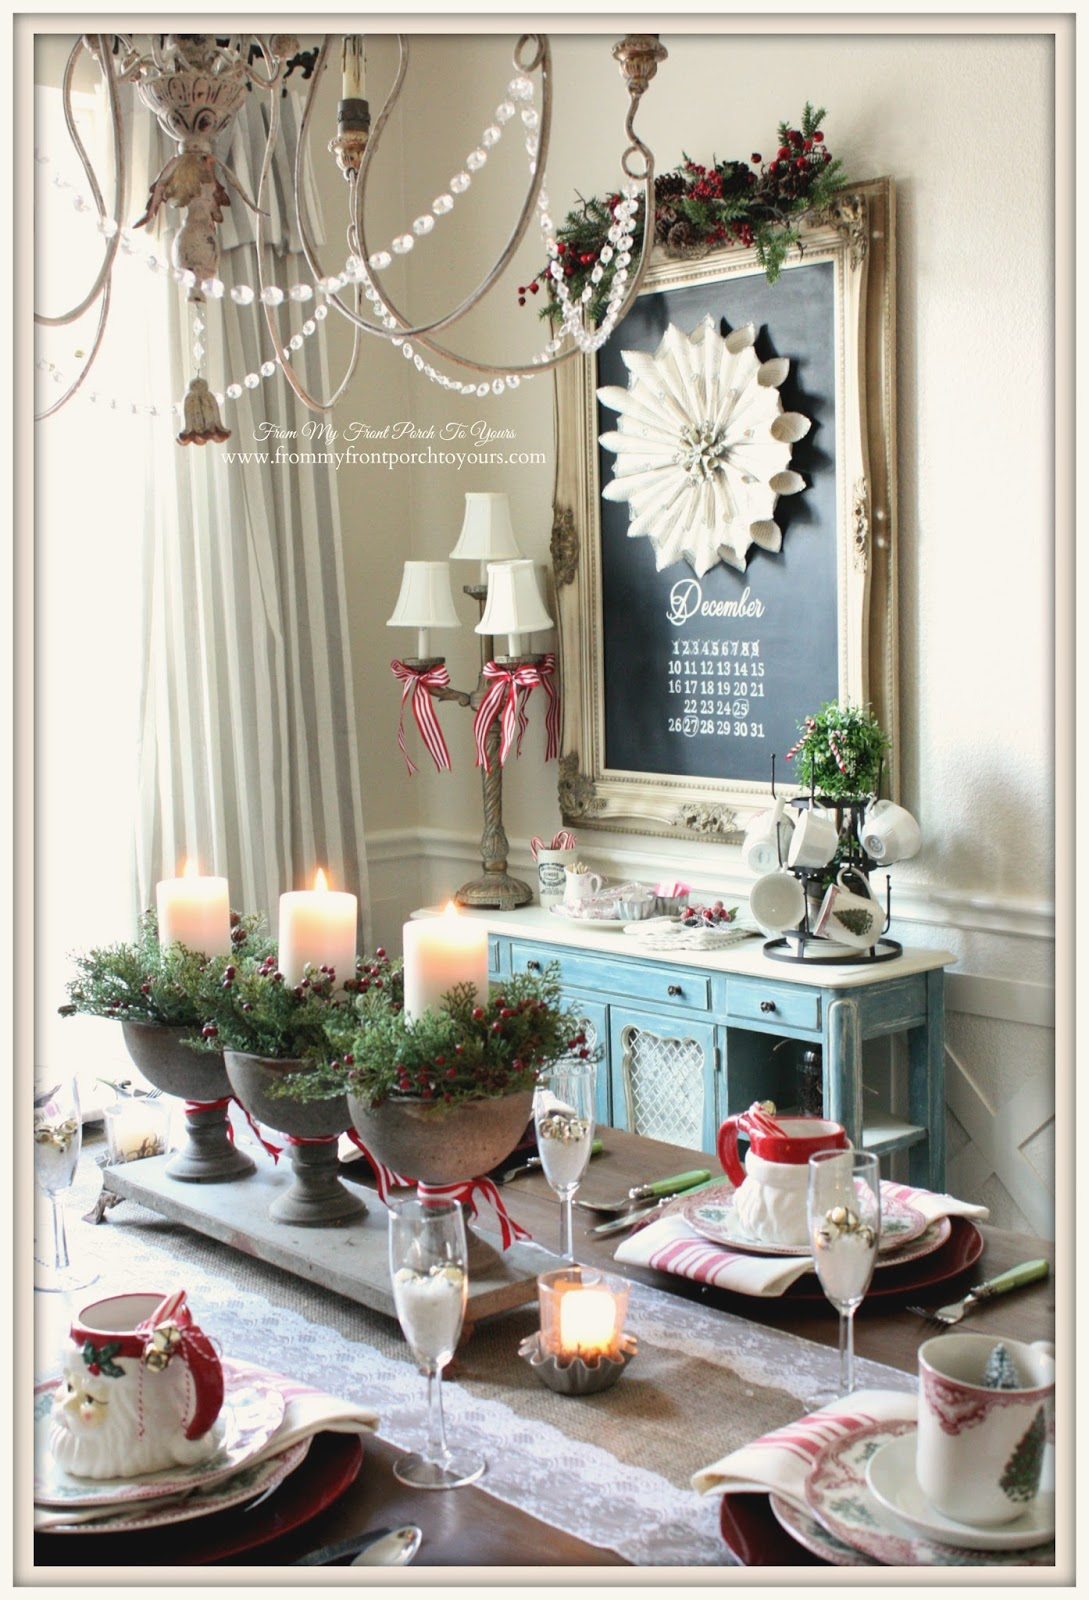 Dining Room Chalk Board-French Farmhouse Vintage Christmas Dining Room- From My Front Porch To Yours